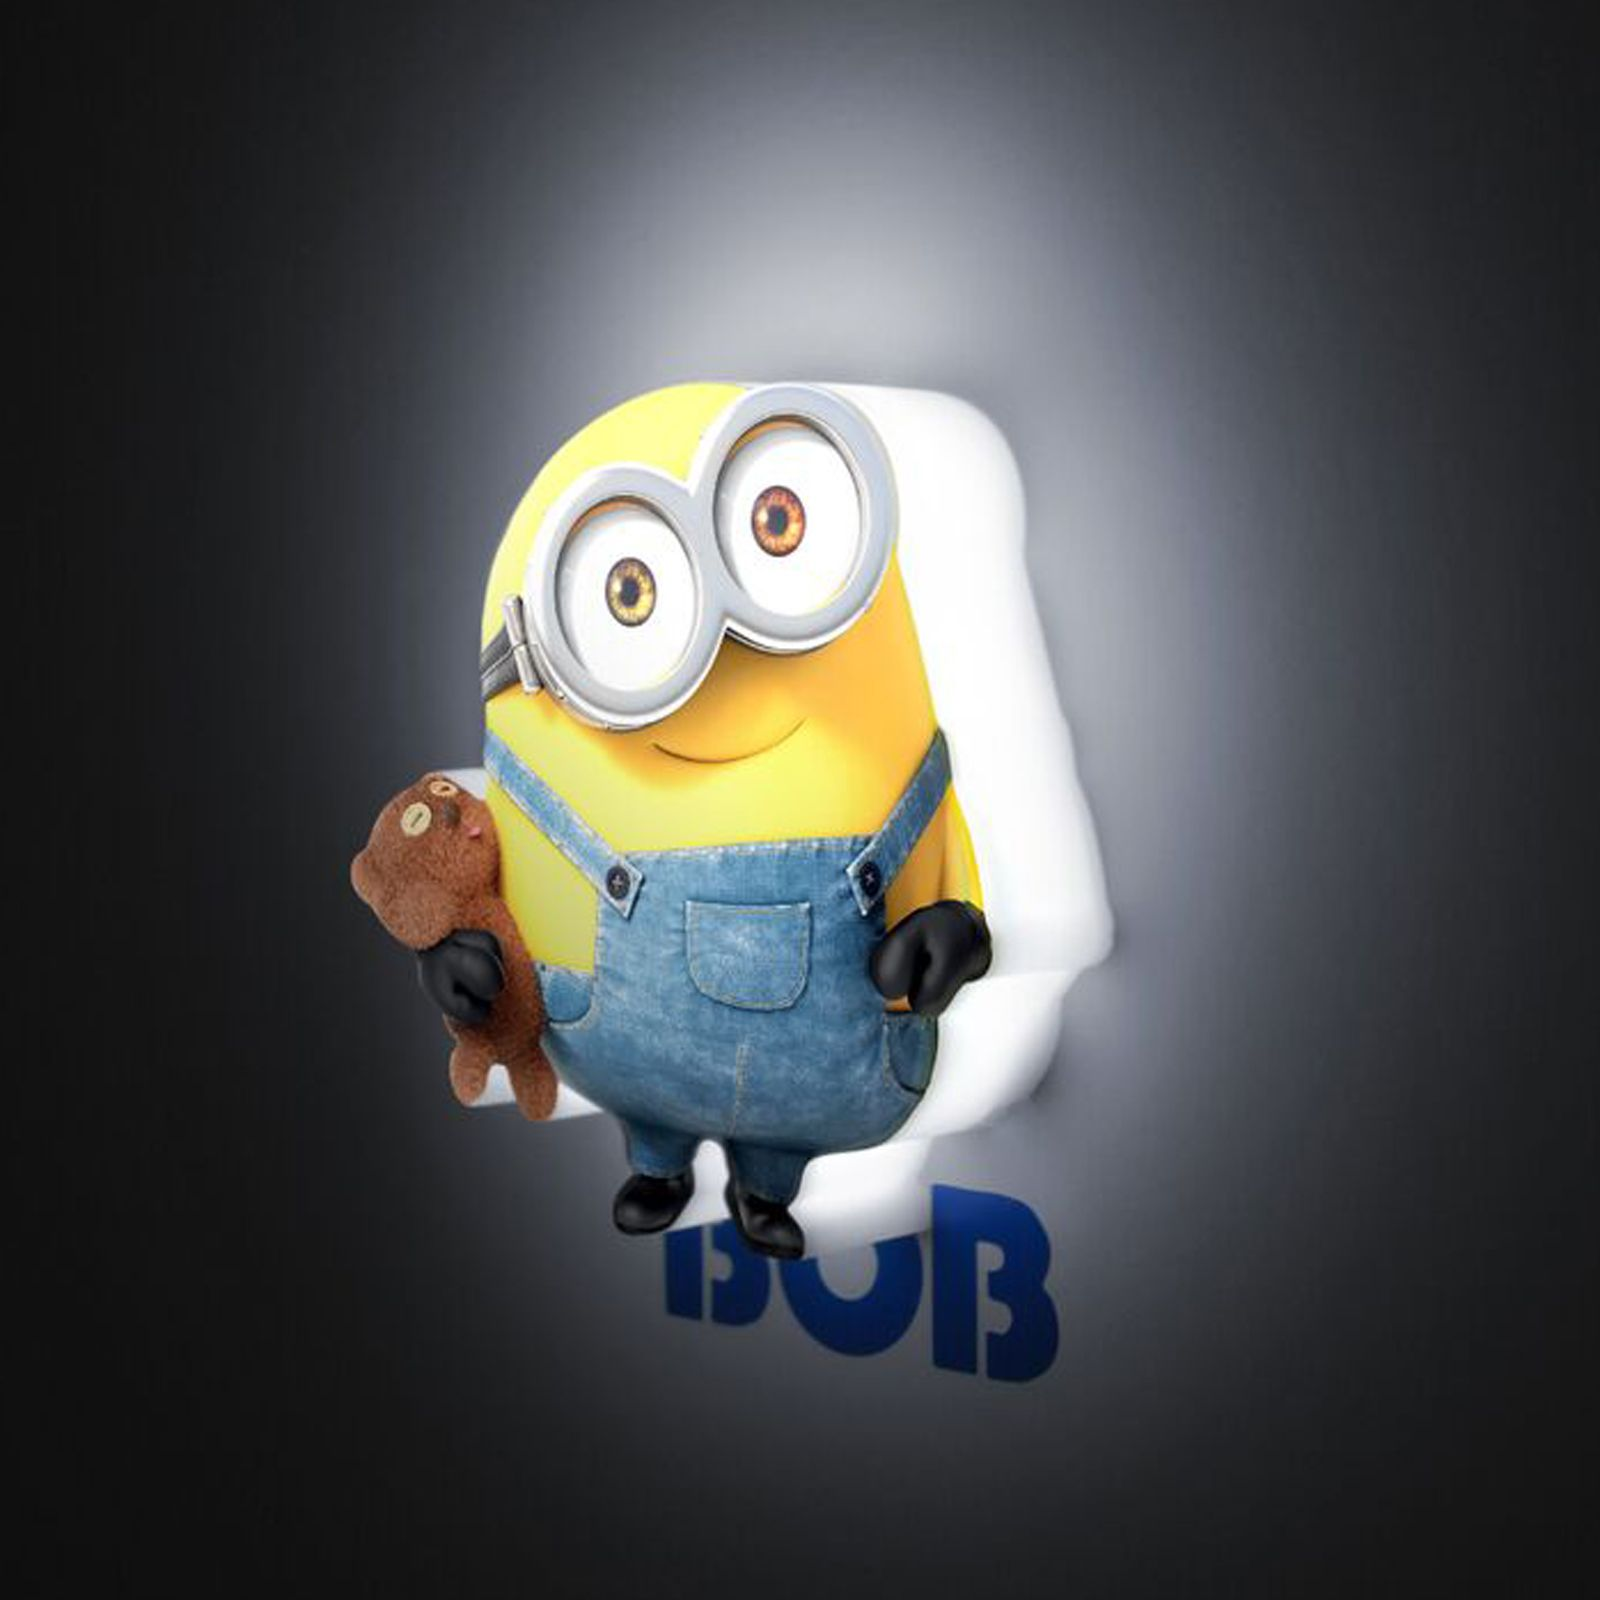 Minion Bedroom Wallpaper 3d Mini Led Wall Lights Kids Bedroom Lighting Minions Star Wars